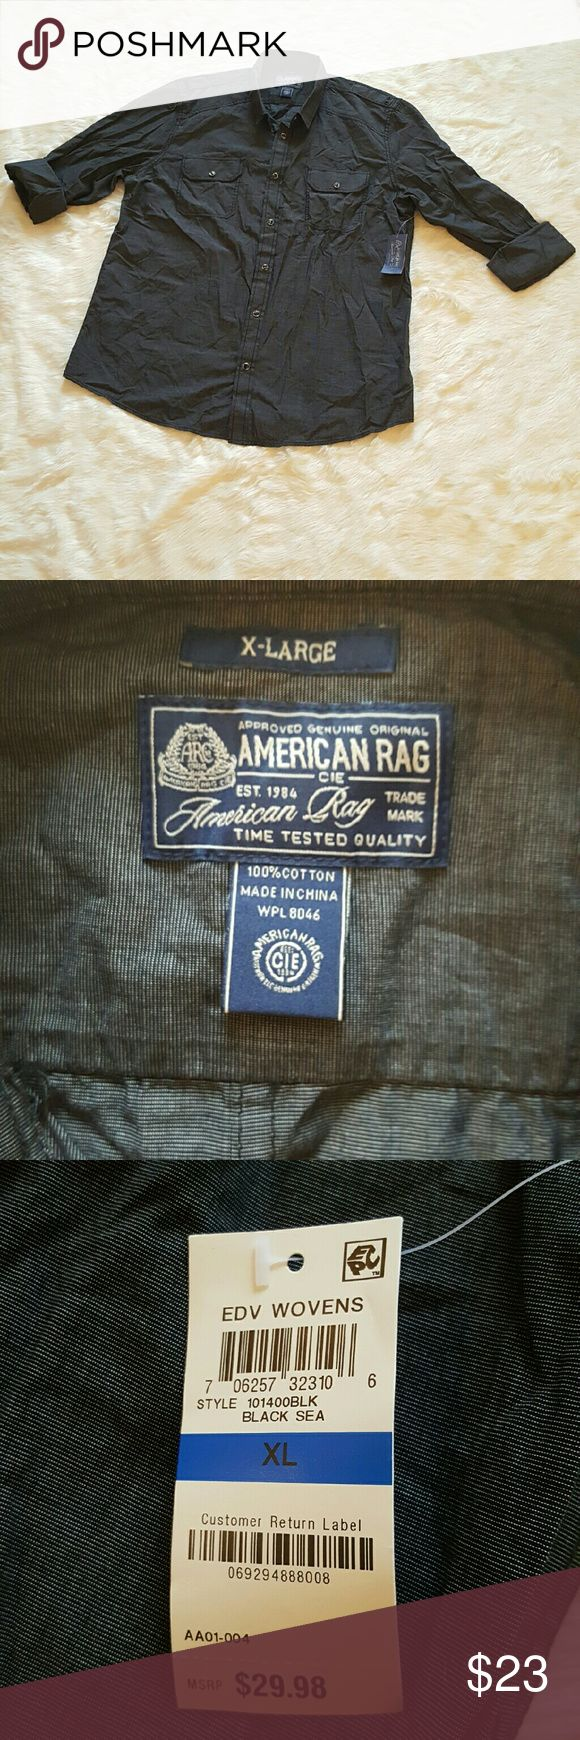 American Rag Casual Button Down Shirt Brand: American Rag  Material:?100% Cotton   Size: XL  Condition: New with tags American Rag Shirts Casual Button Down Shirts